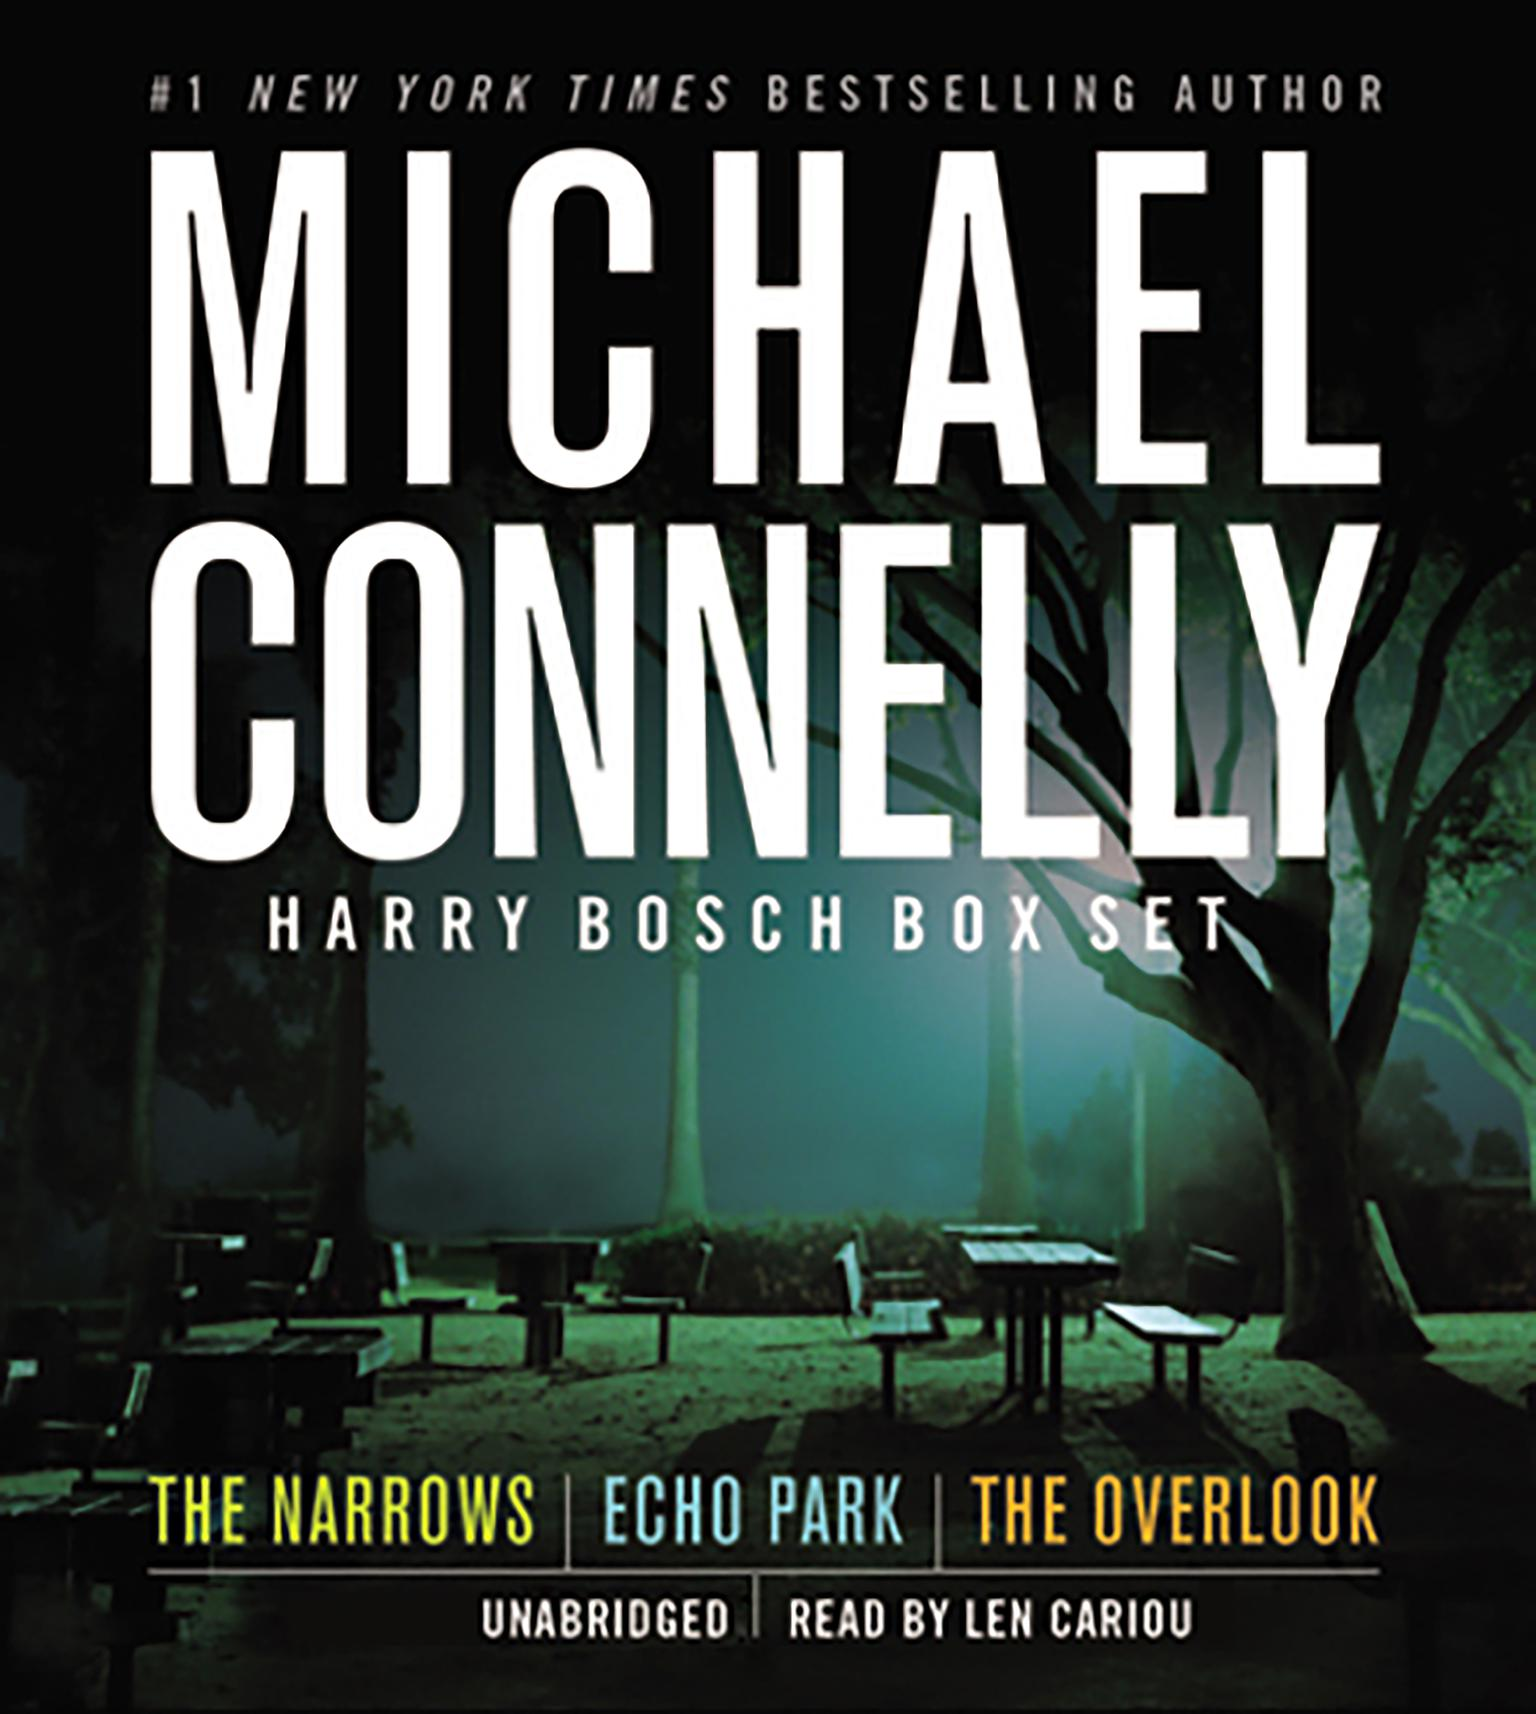 Printable Harry Bosch Box Set Audiobook Cover Art